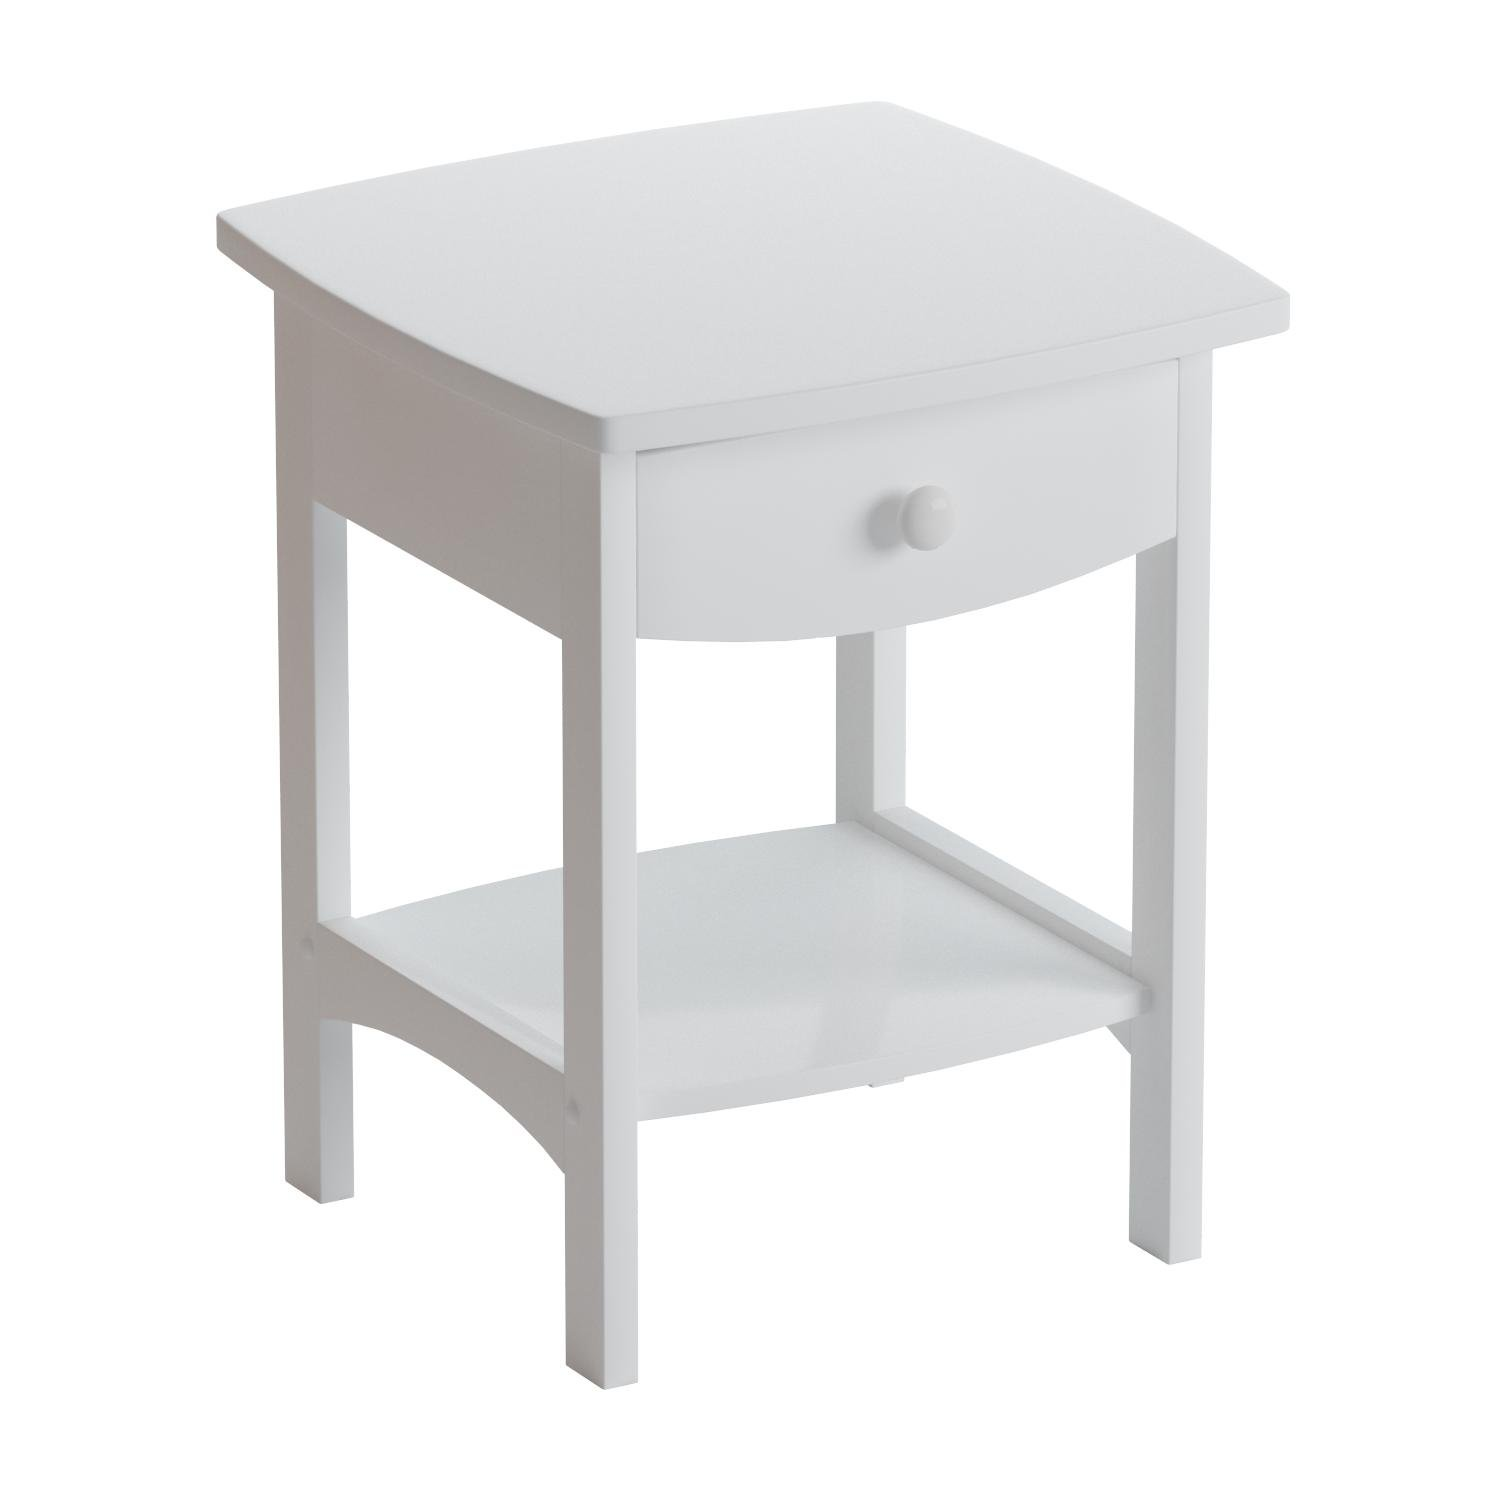 Winsome Wood 10218 Claire Accent Table, White by Winsome Wood